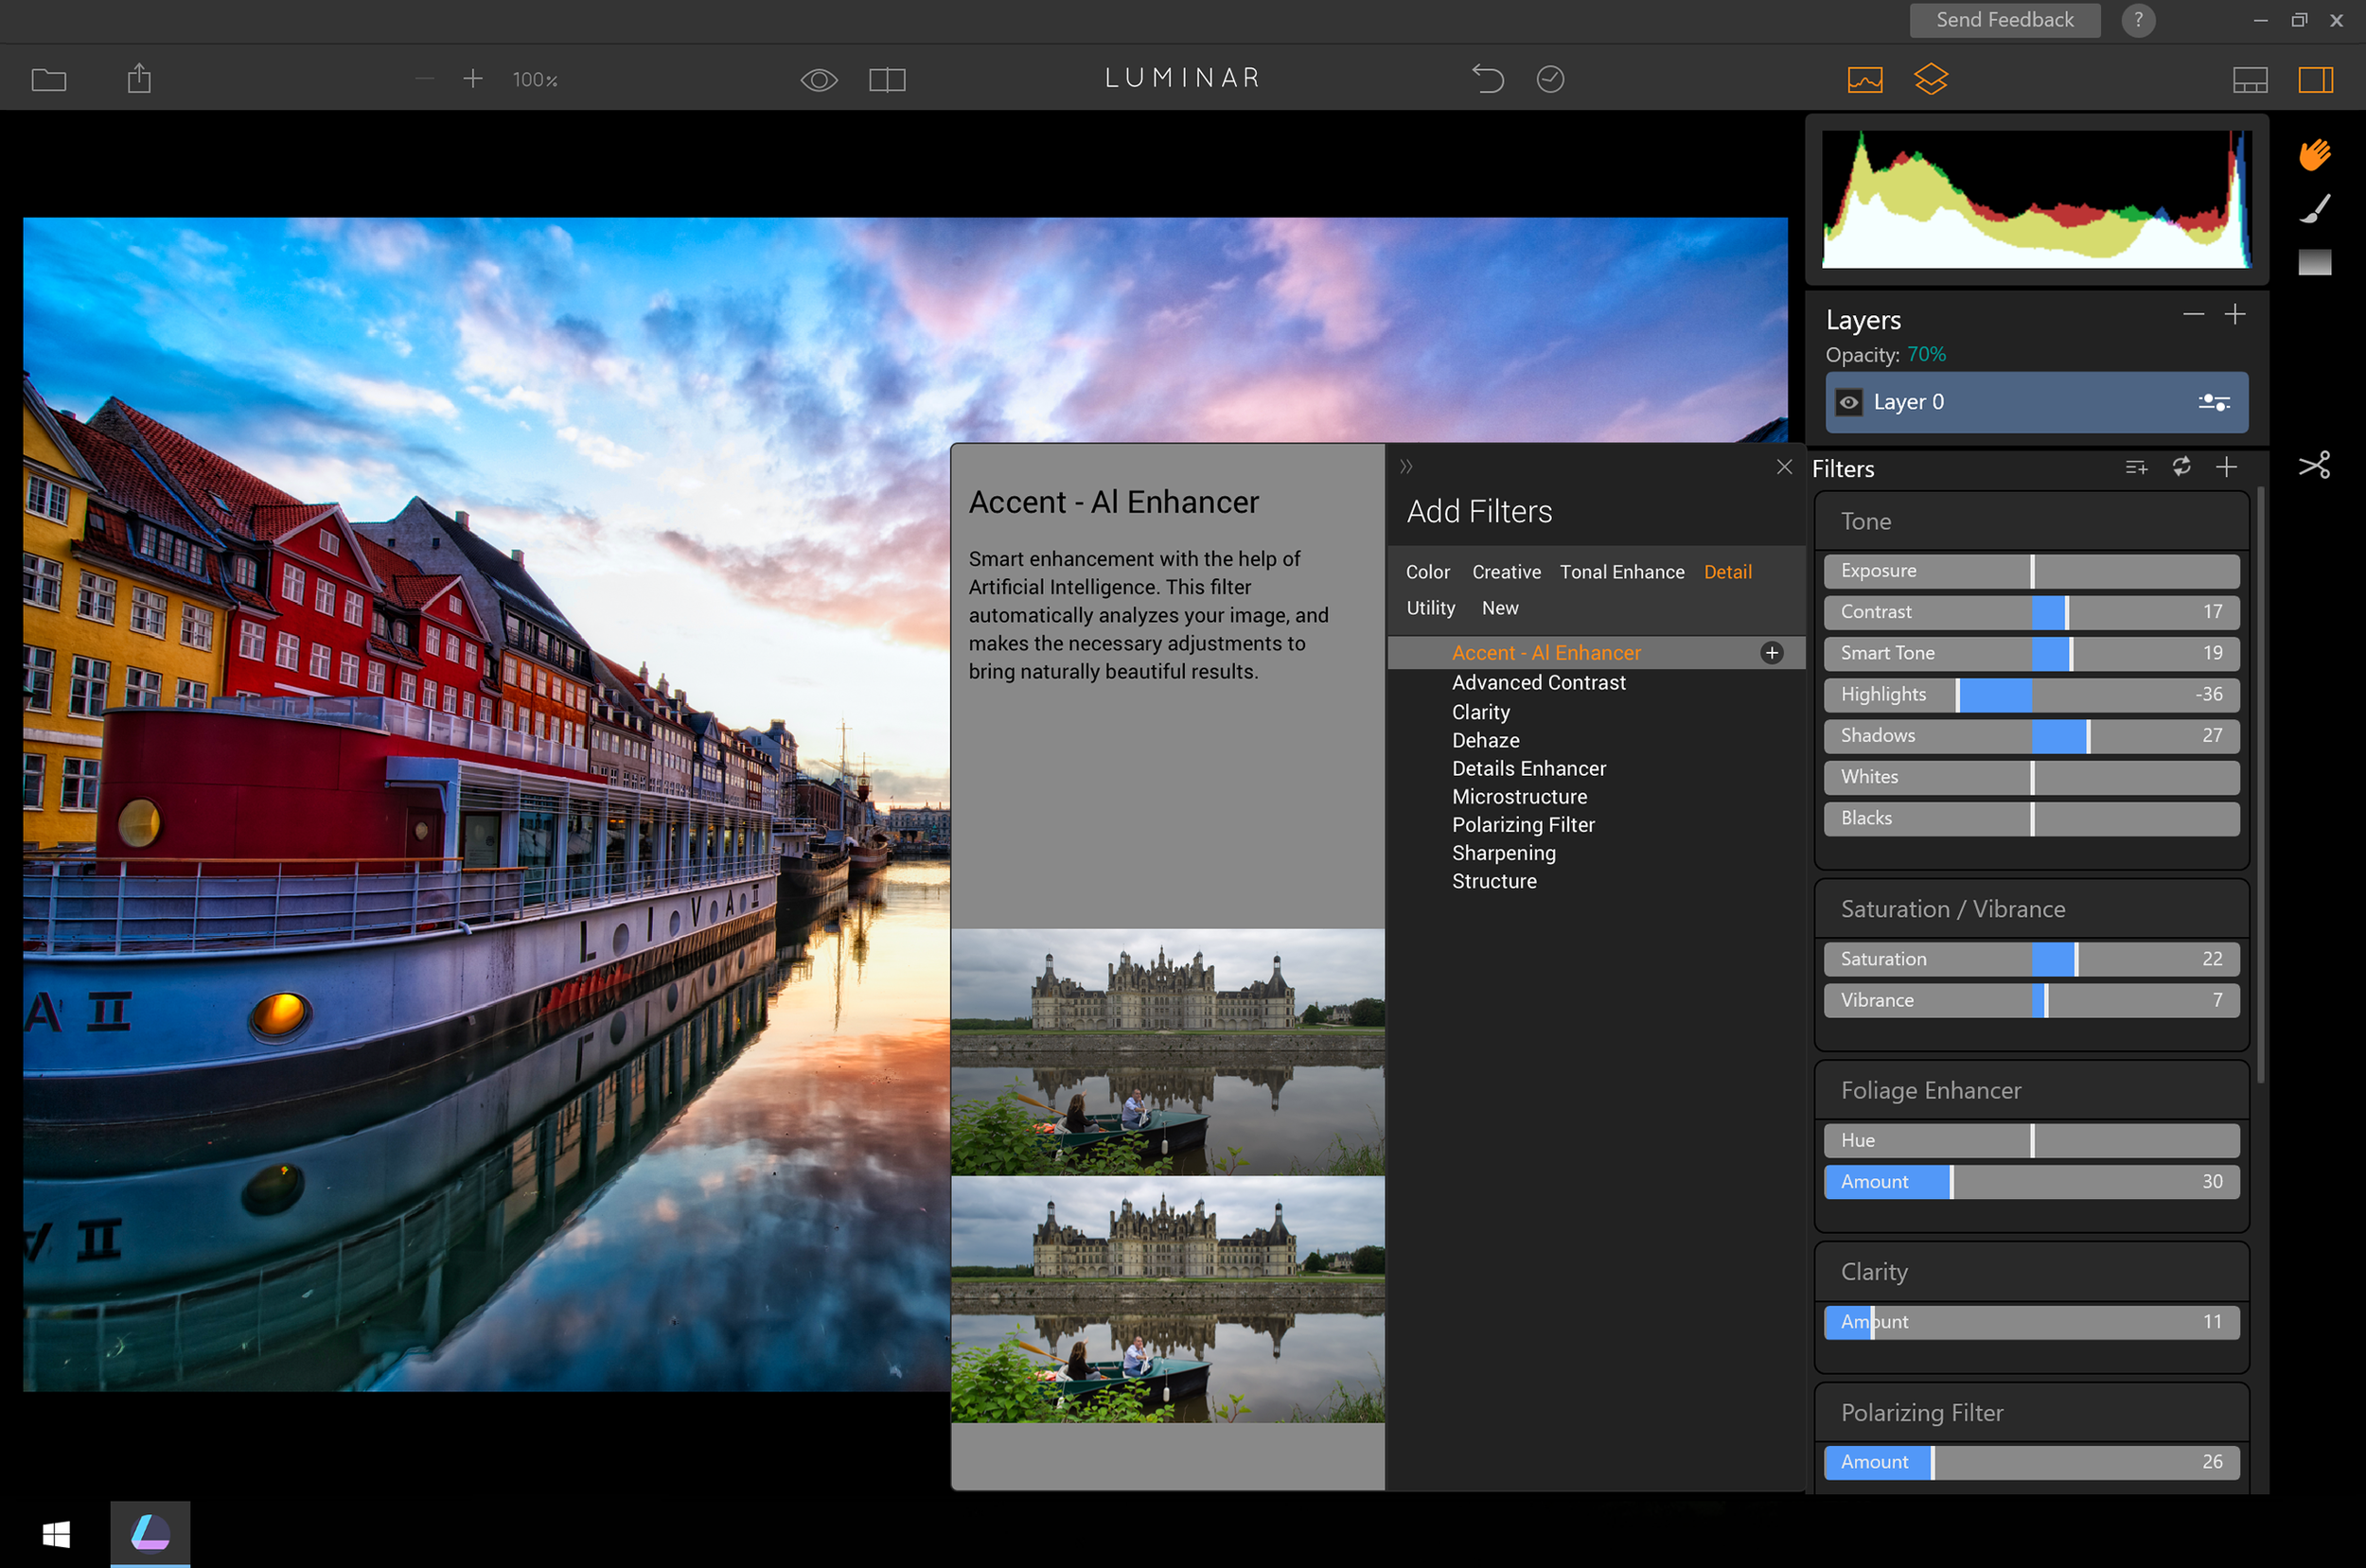 40+ Filters to style your photos